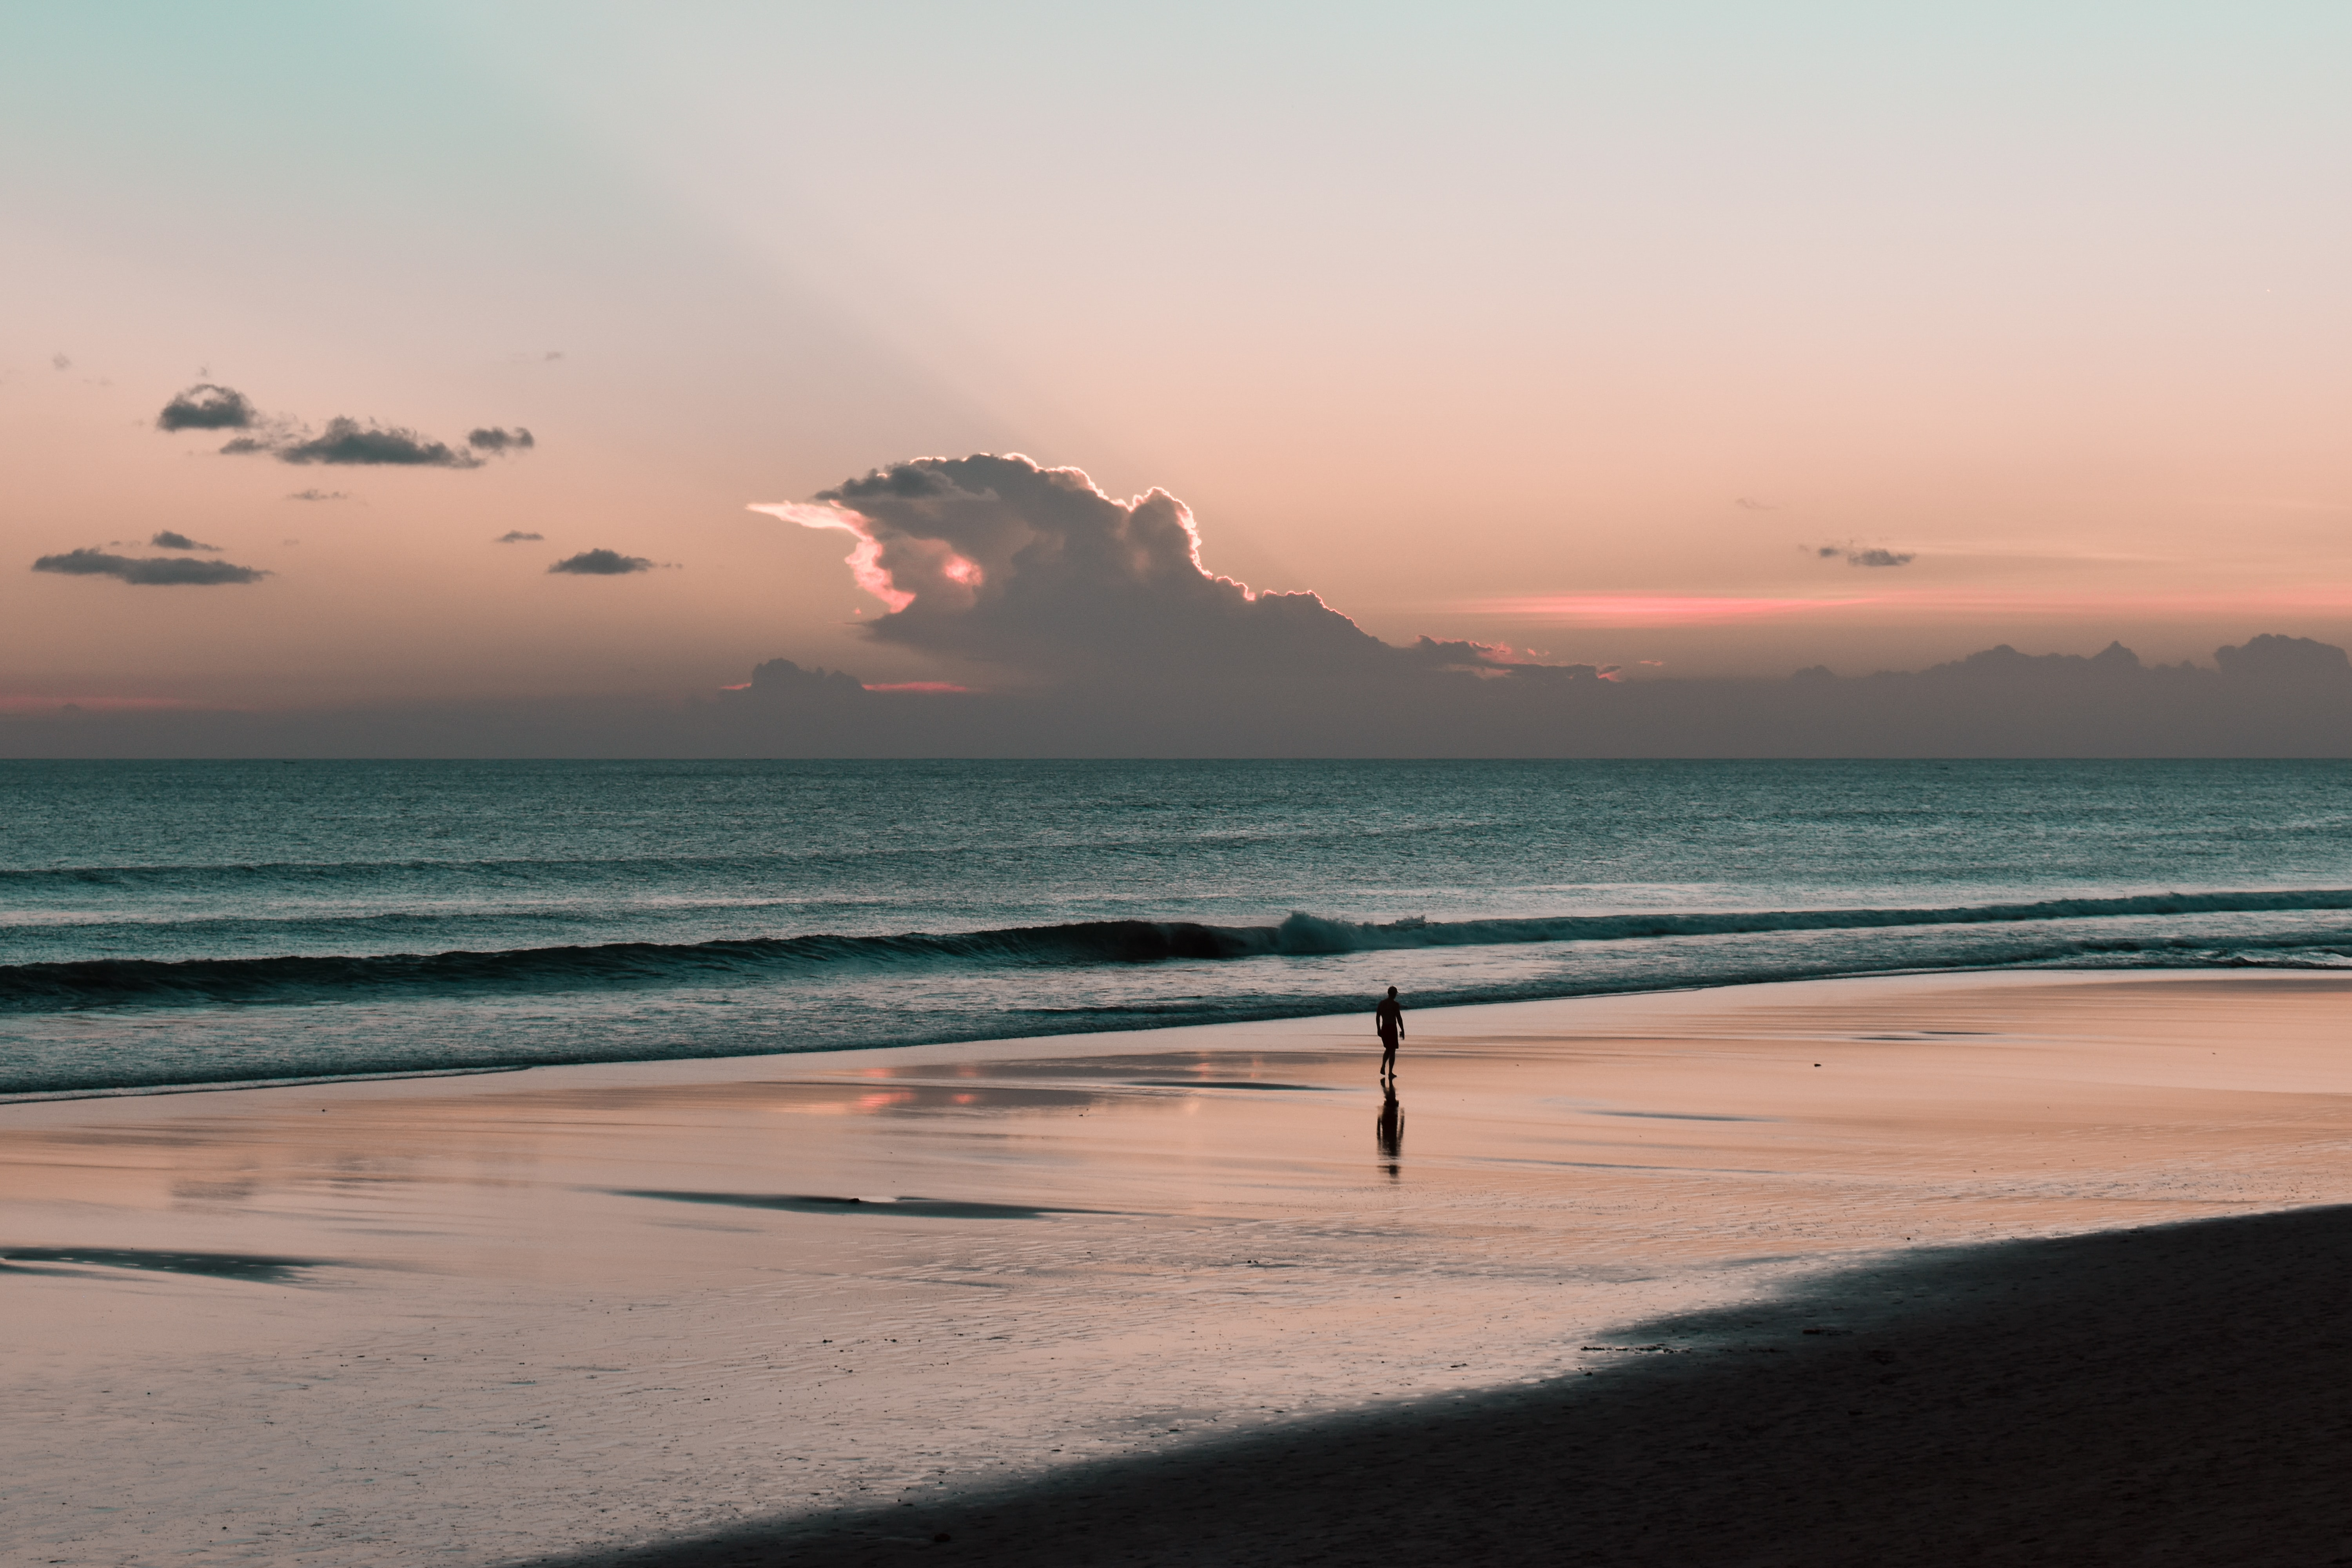 silhouette of person facing body of water on seashore